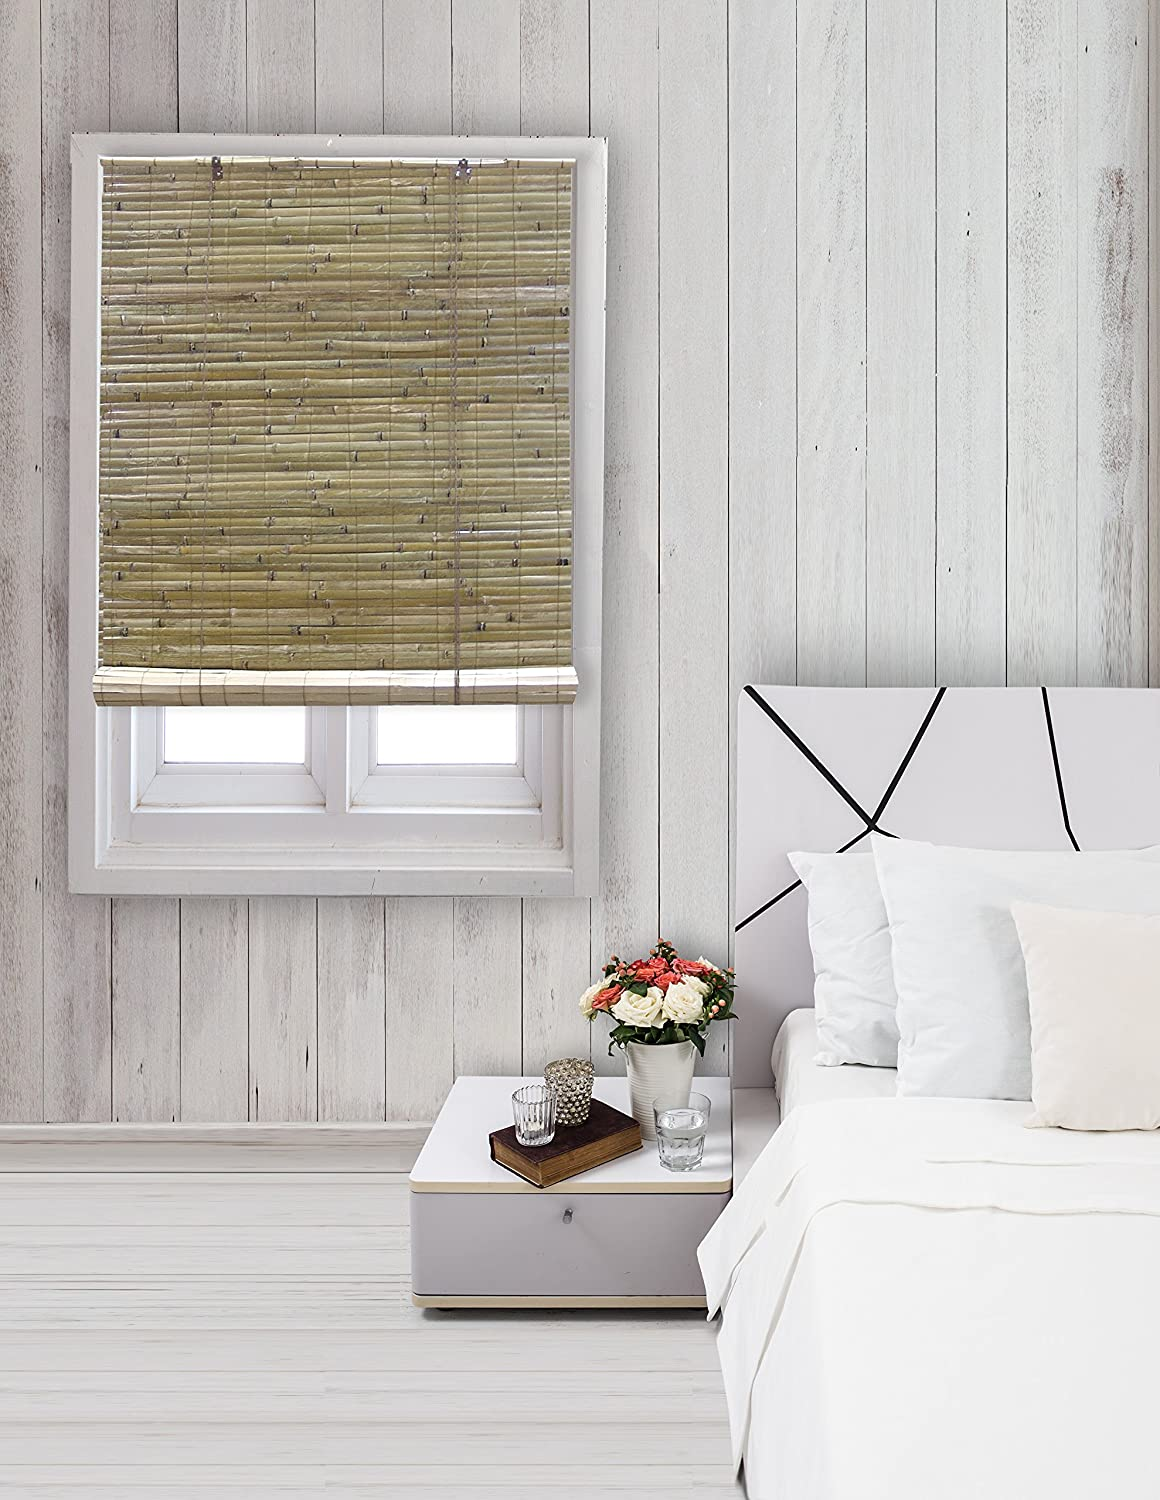 Window blinds for sale window shade price list brands amp review - Amazon Com Radiance 0108108 Laguna Bamboo Shade Roll Up Blind Natural 72 Inch Wide By 72 Inch Long Home Kitchen